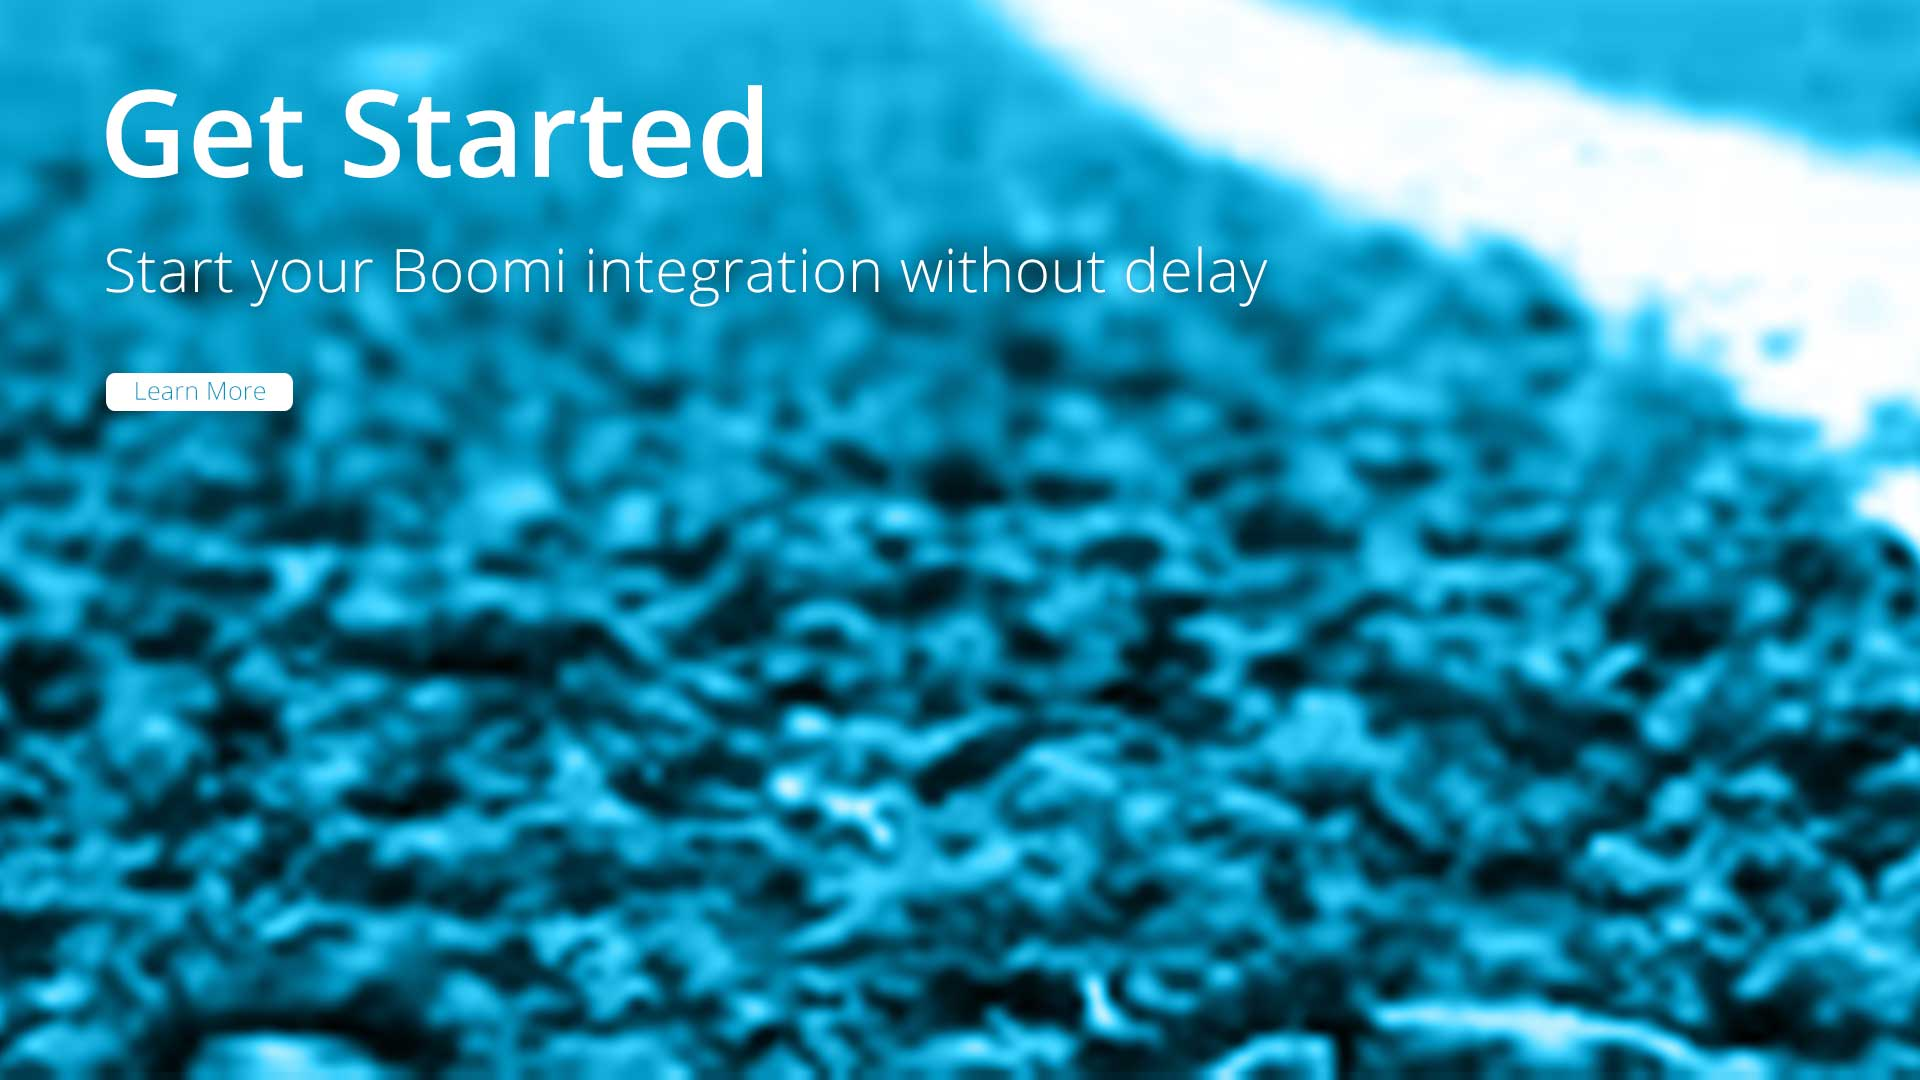 Start Your Boomi Integration Without Delay